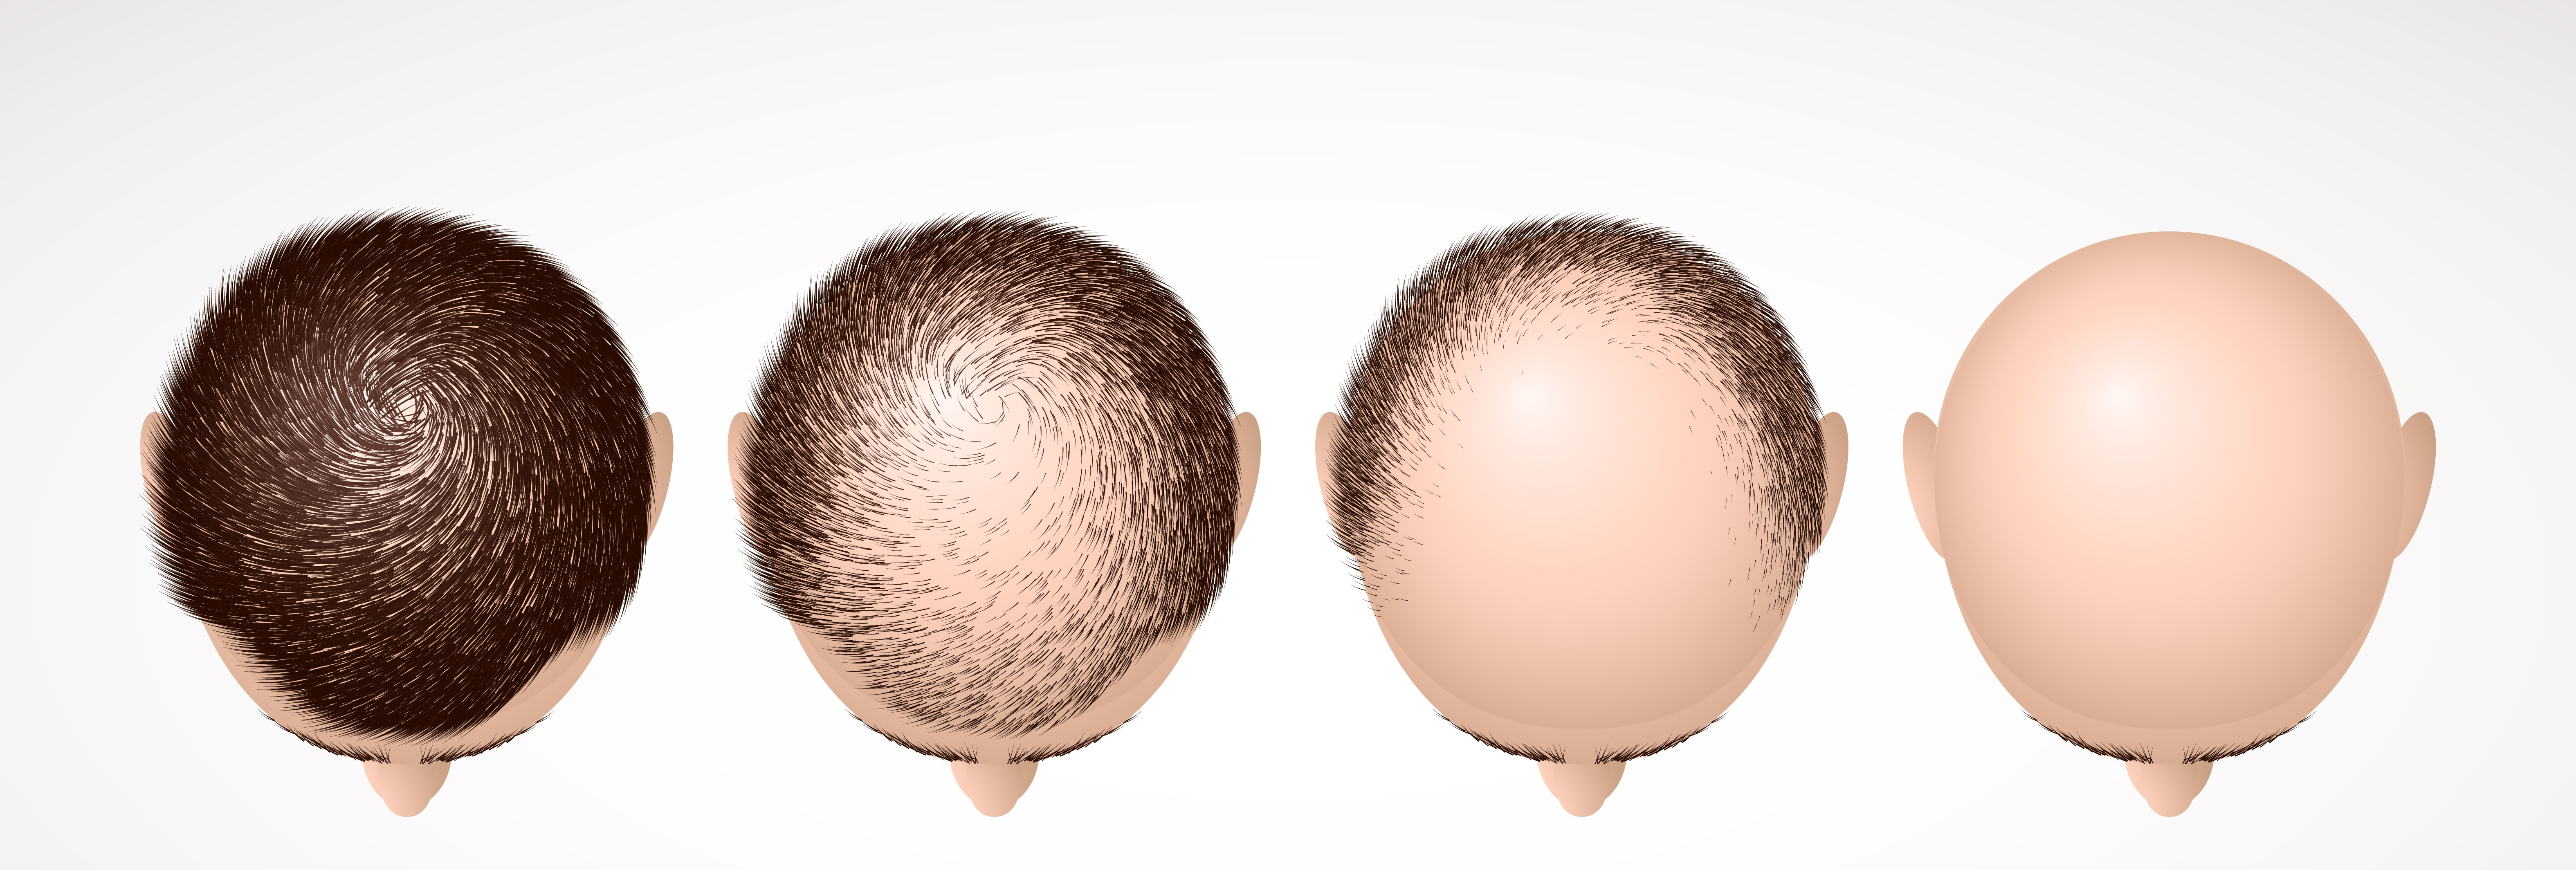 HAIR GROWTH TREATMENT FOR THE THICK, THE THIN & THE BALD!